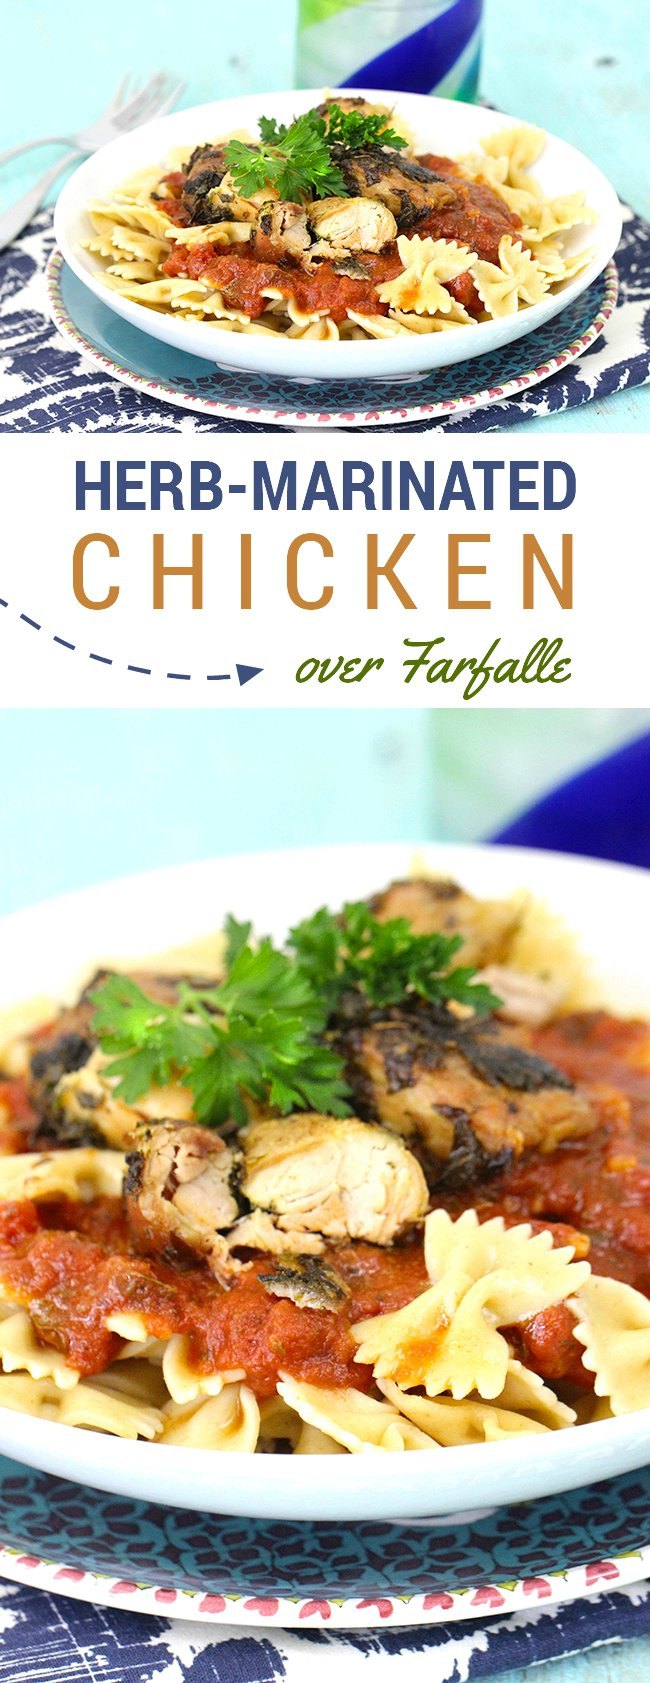 Easy Herb Marinated Chicken over Farfalle